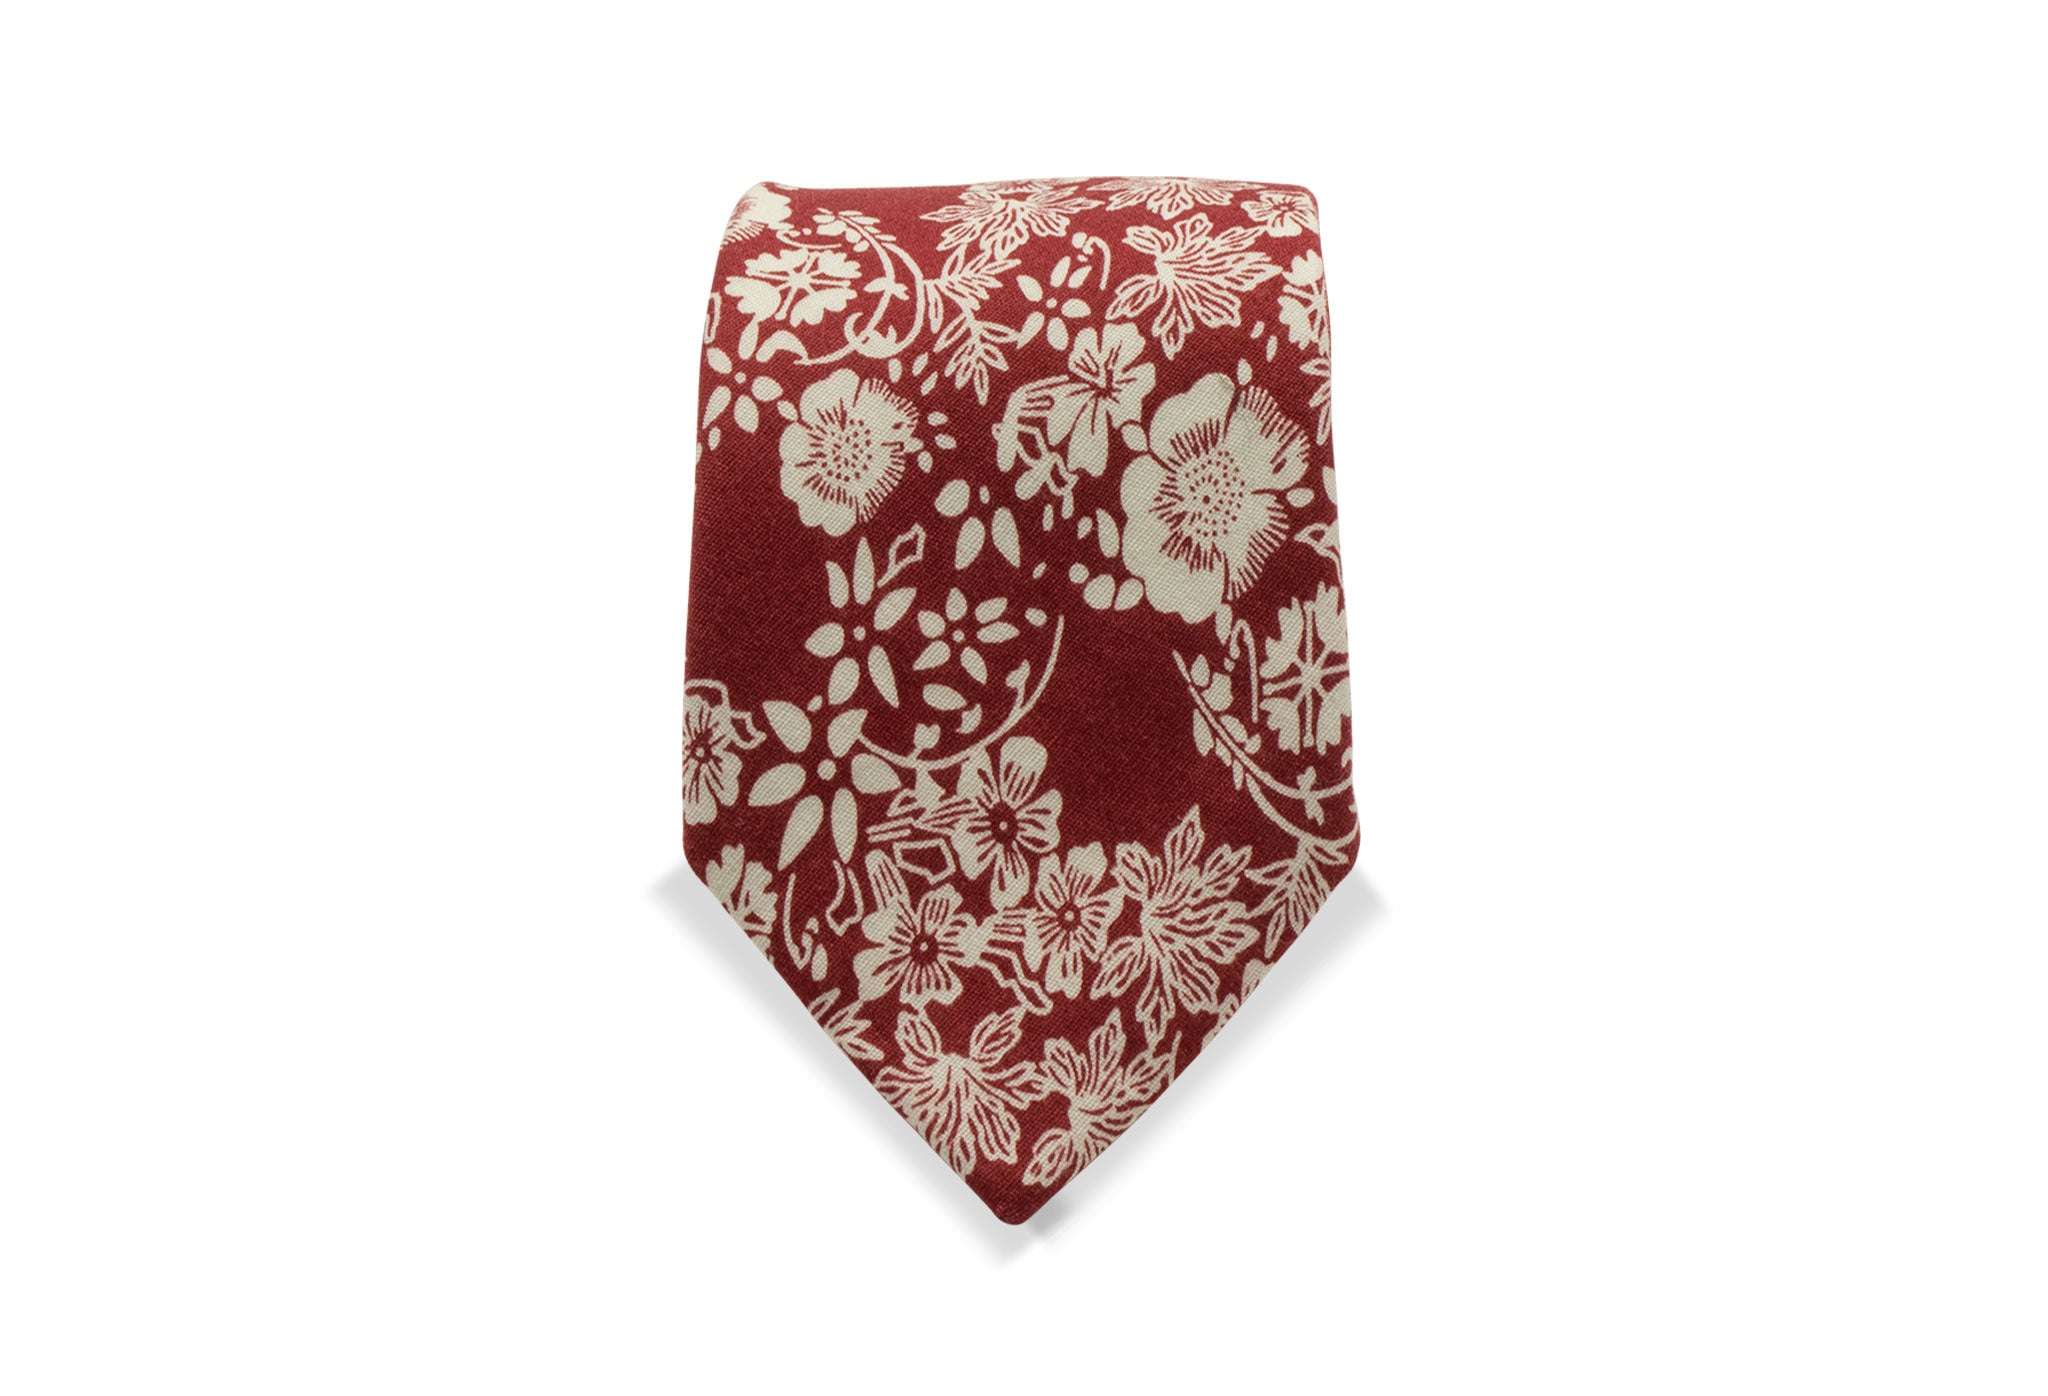 Shimamaki Japanese Cotton Tie & Pocket Square